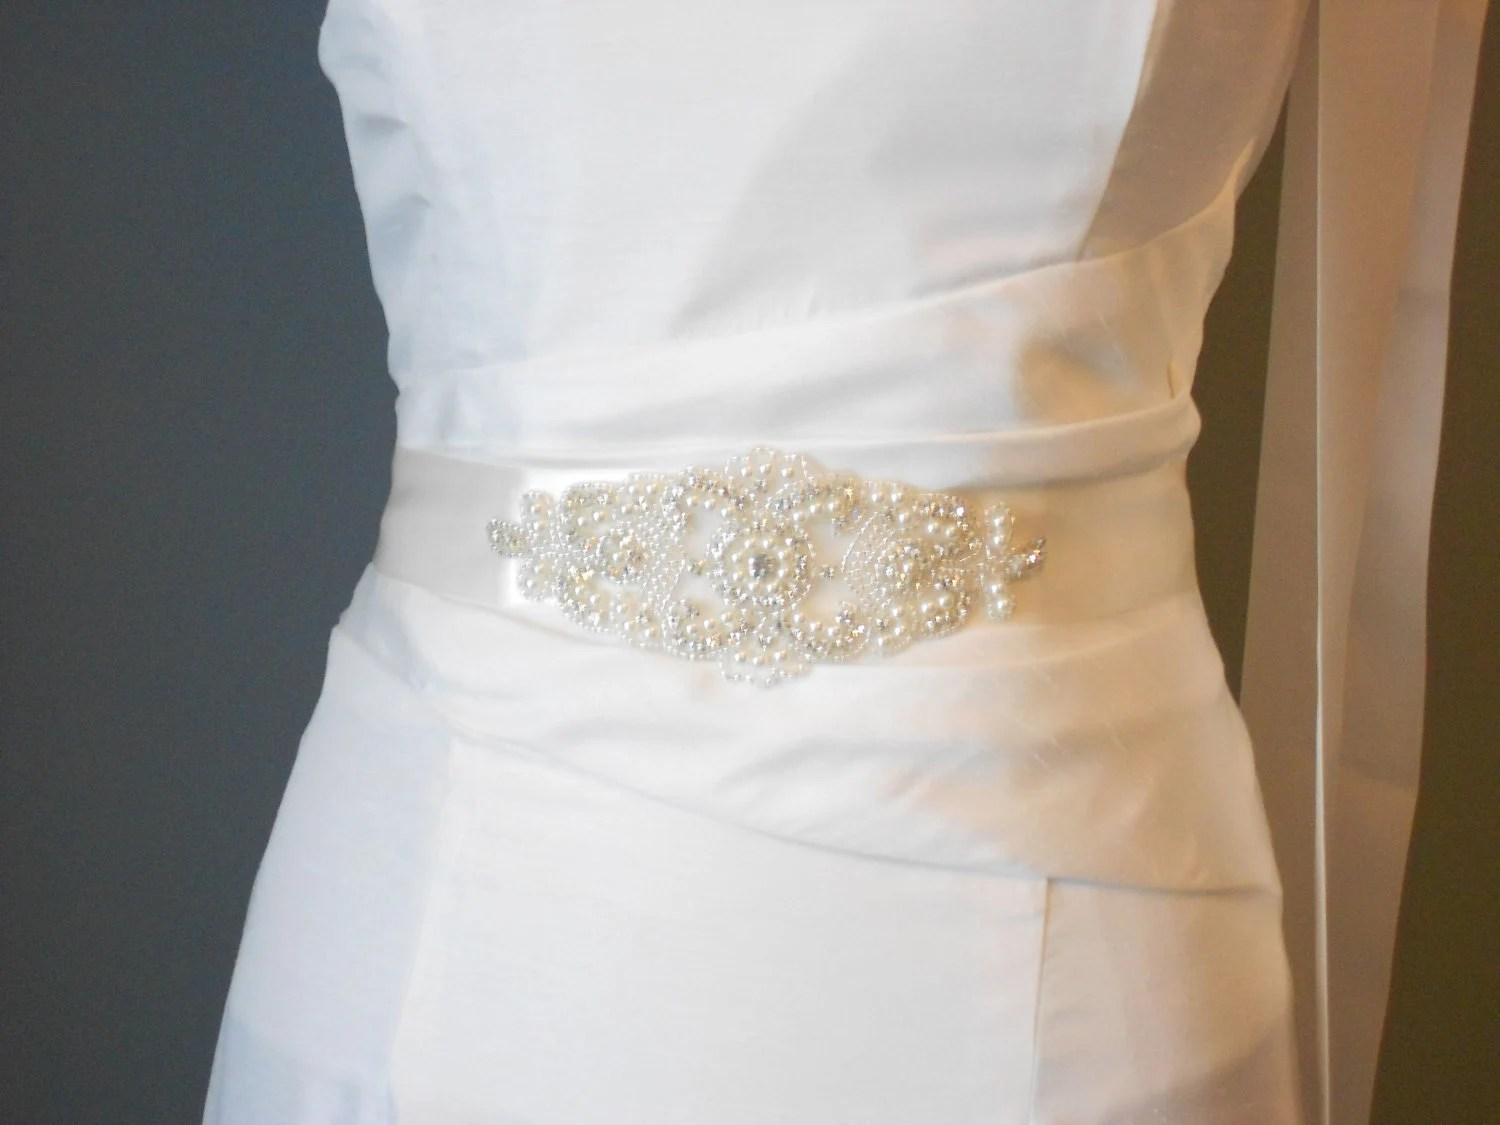 Bridal Sash Beaded Sash Wedding Dress Sash Rhinestone Sash